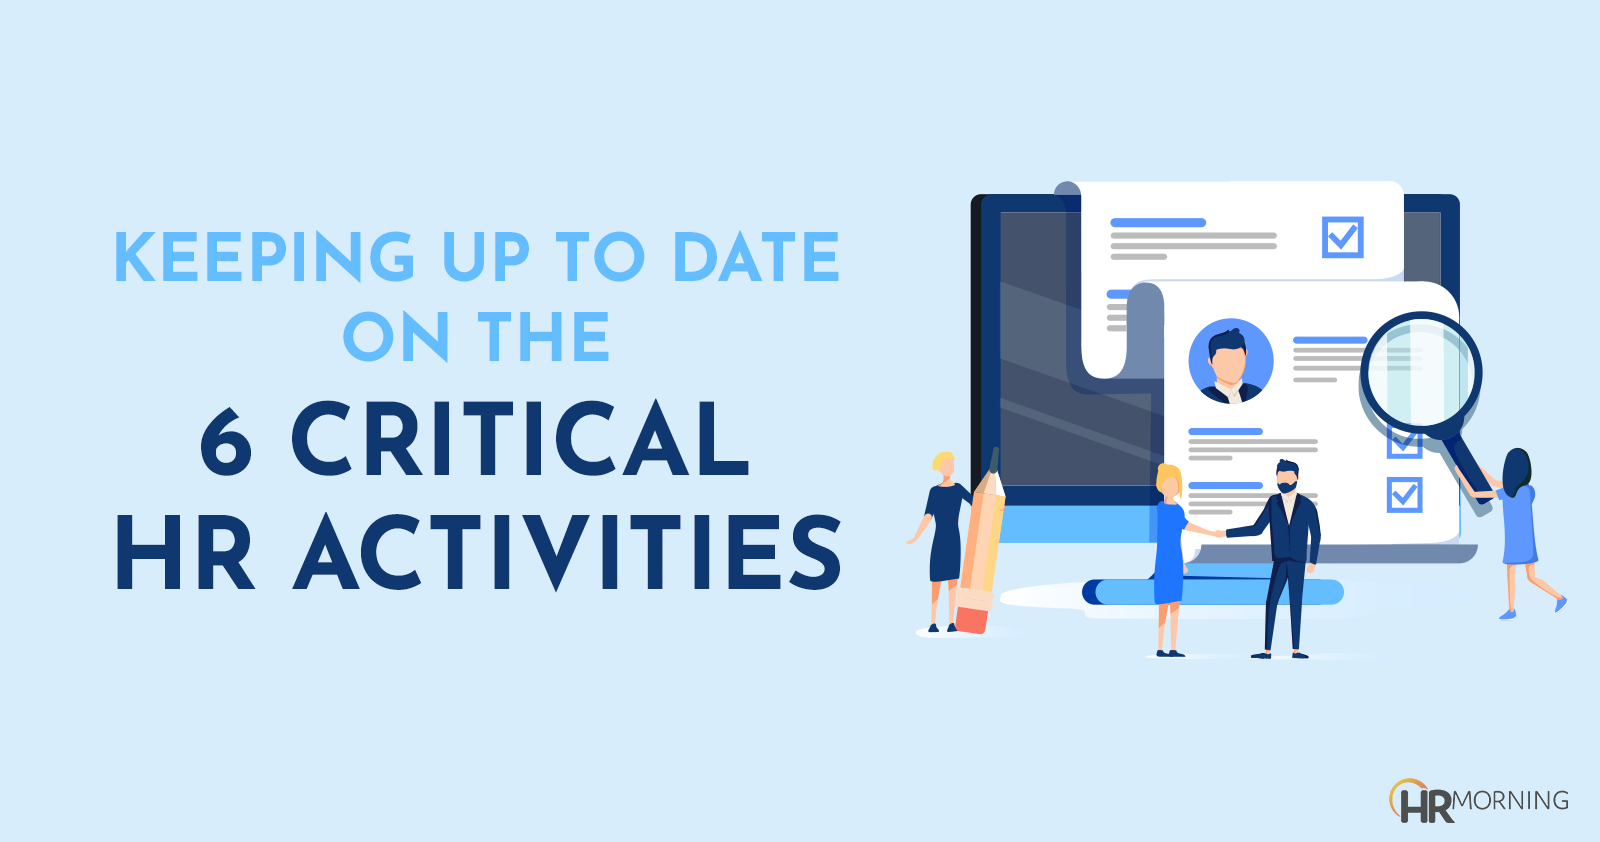 Keeping Up to Date on the 6 Critical HR Activities